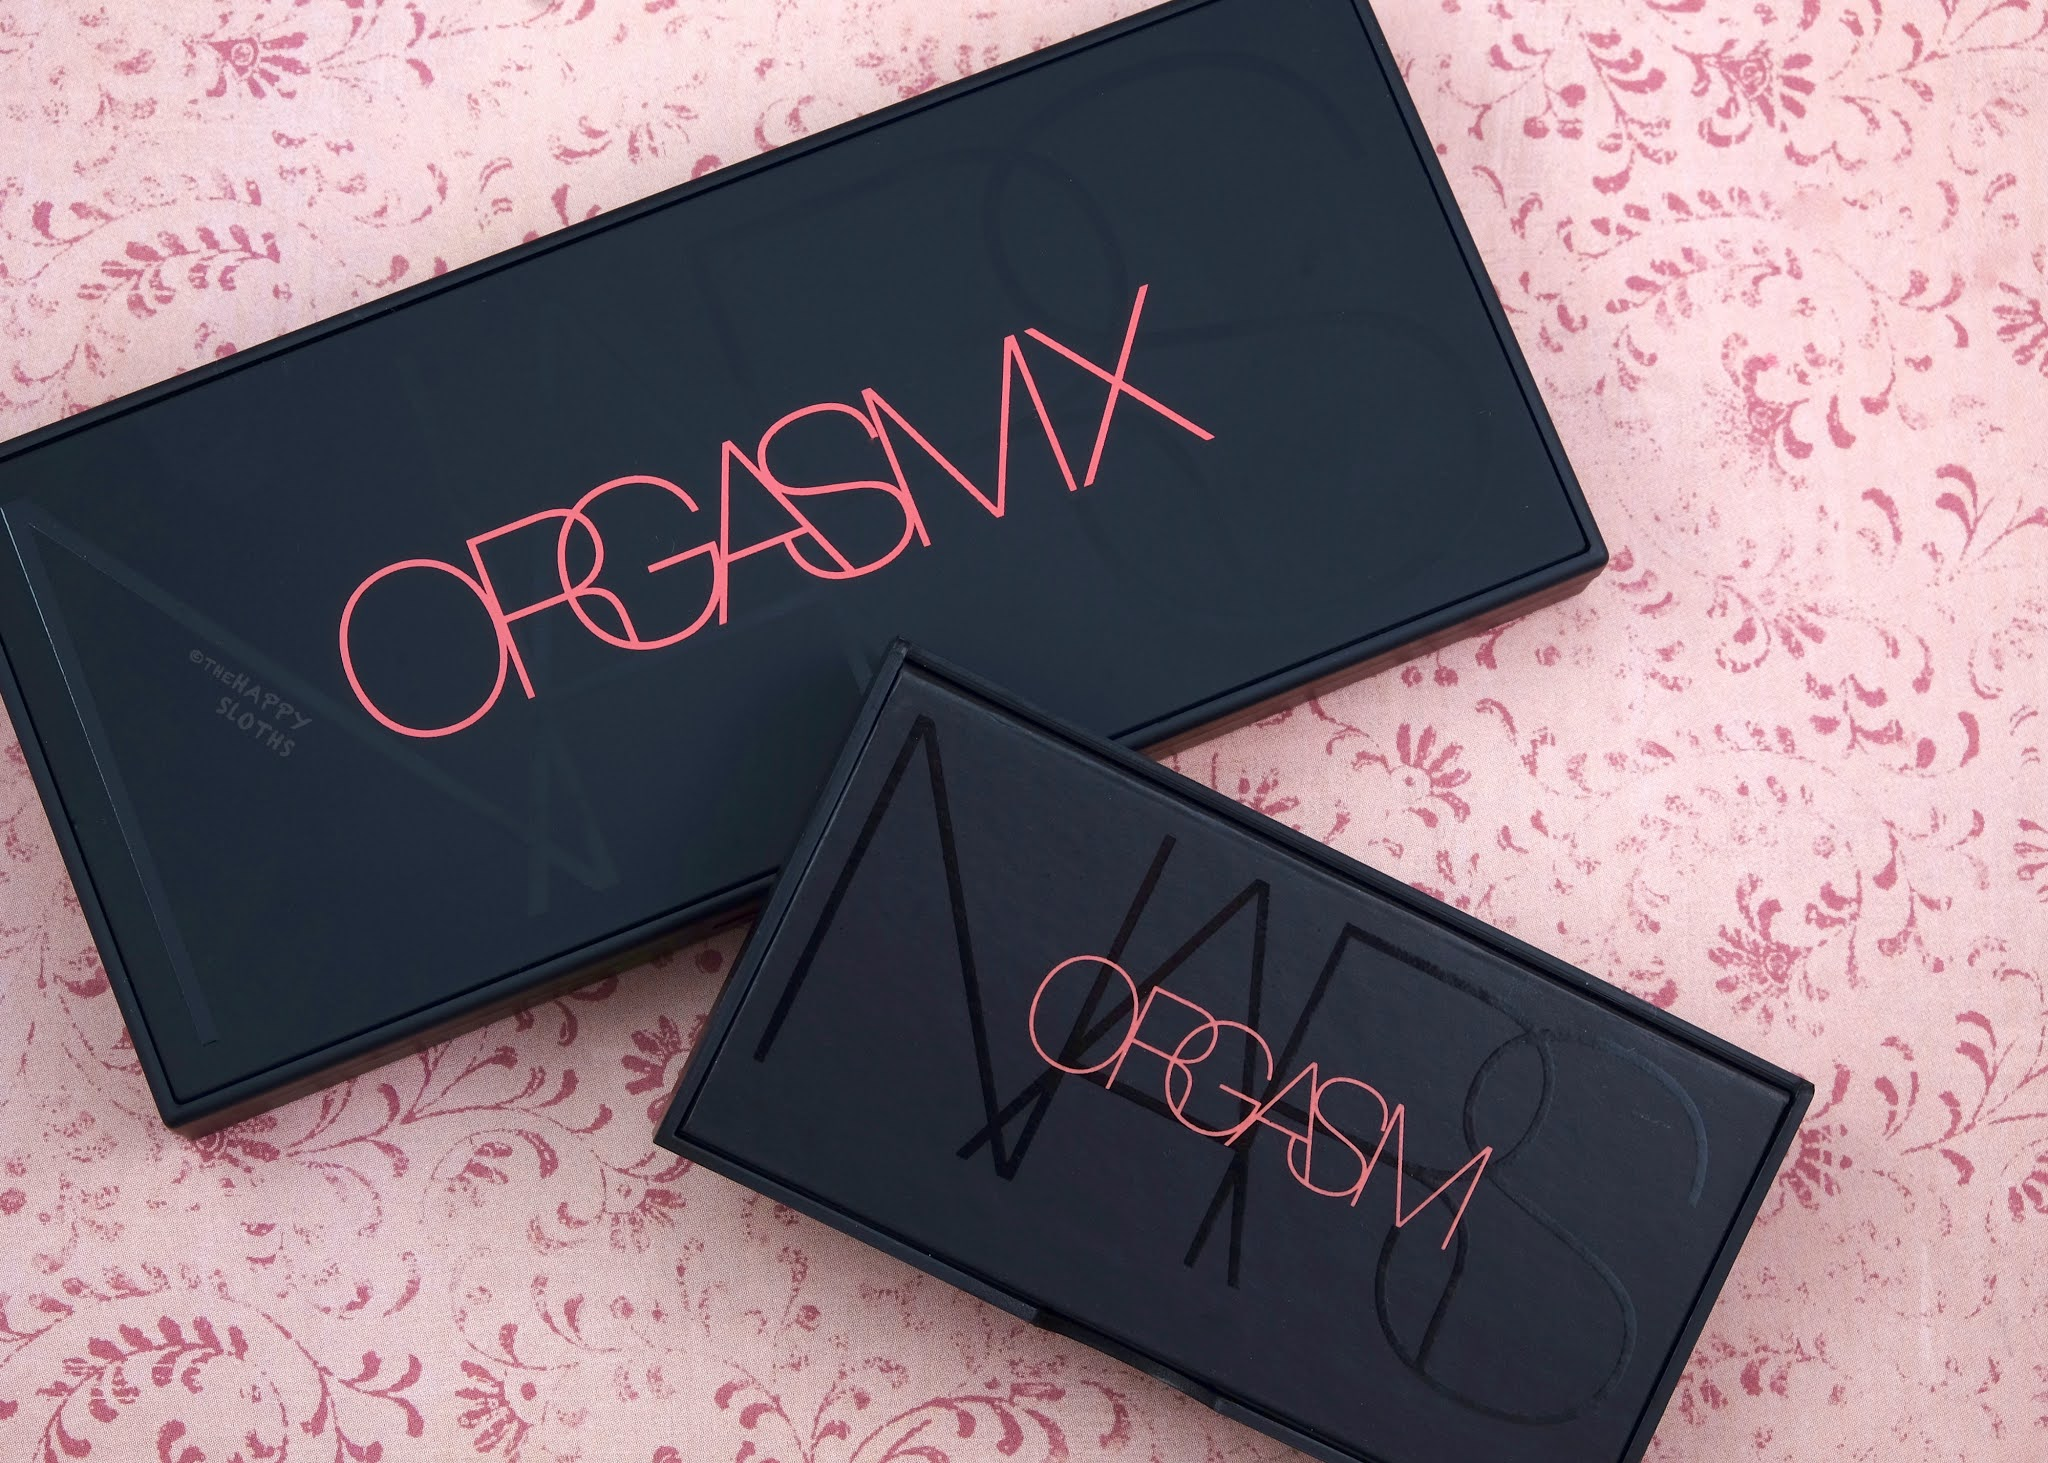 NARS | Orgasm X Cheek Palette & Mini Orgasm Eyeshadow Palette: Review and Swatches